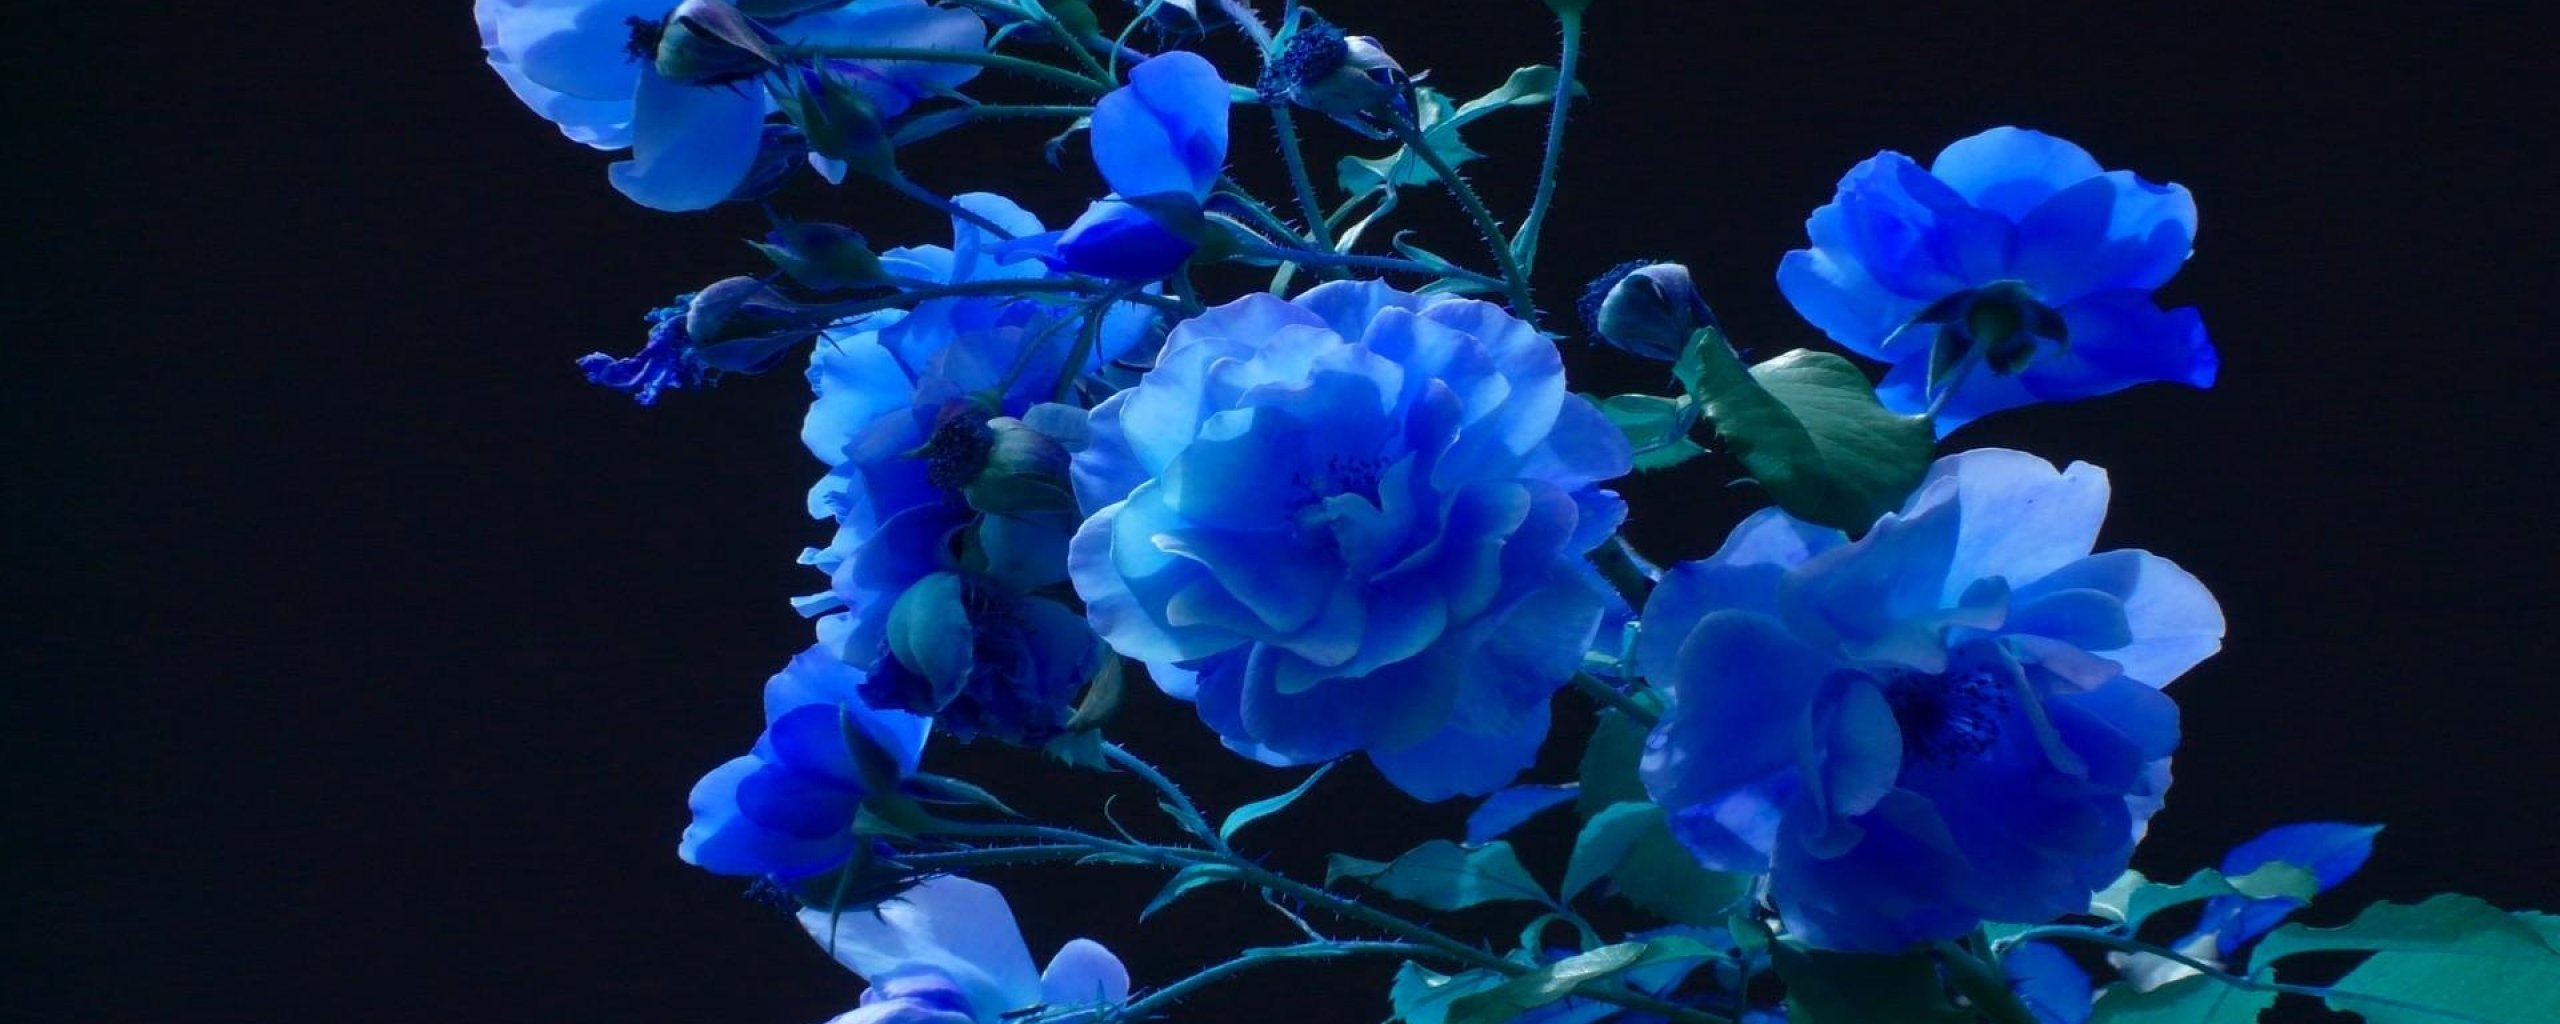 Related Pictures rose buds garden blue black background wallpapers 2560x1024